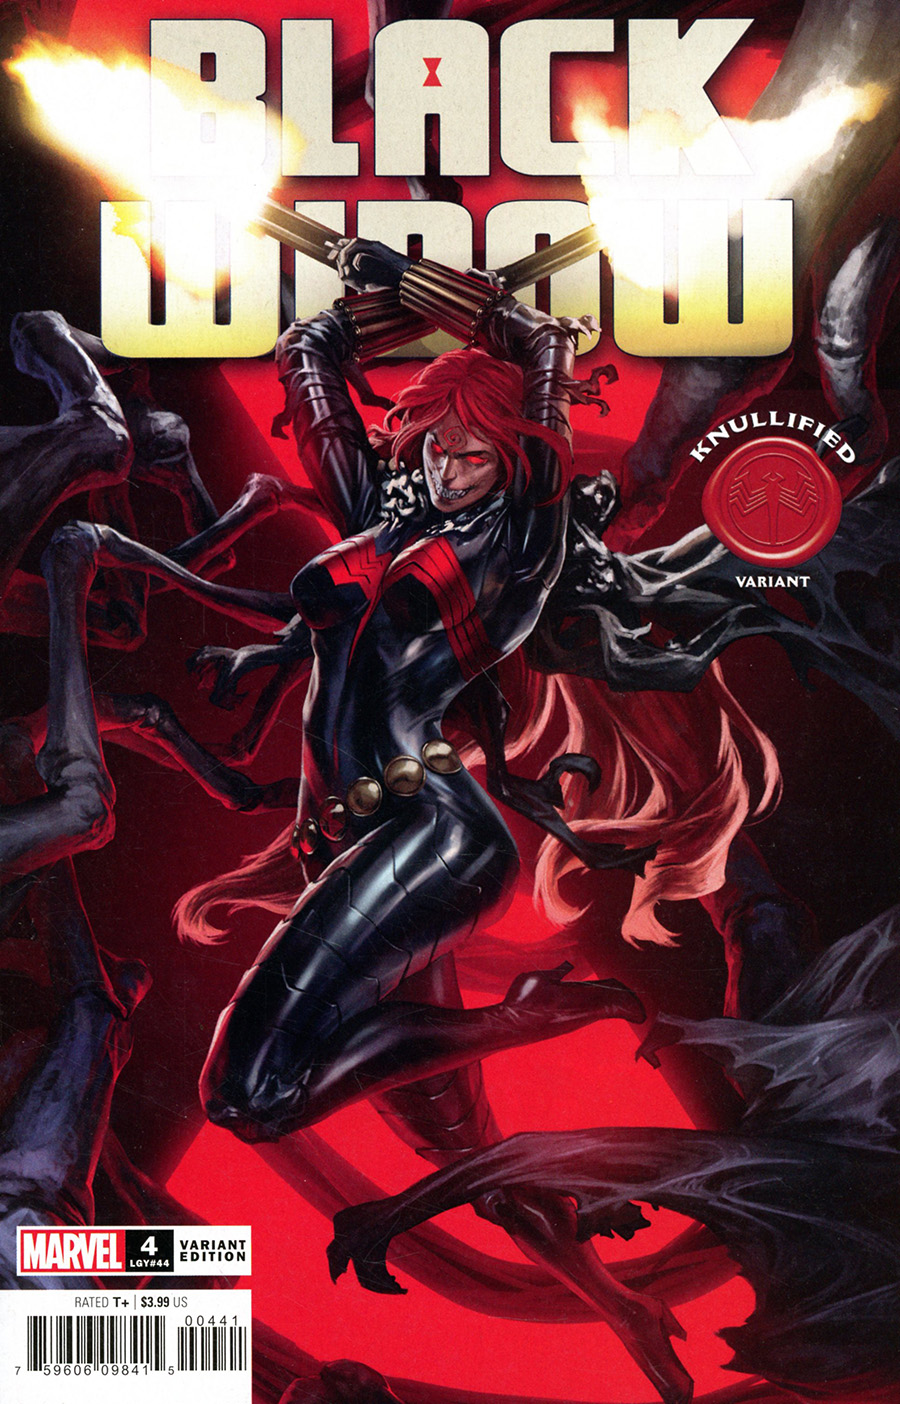 Black Widow Vol 8 #4 Cover B Variant Skan Knullified Cover